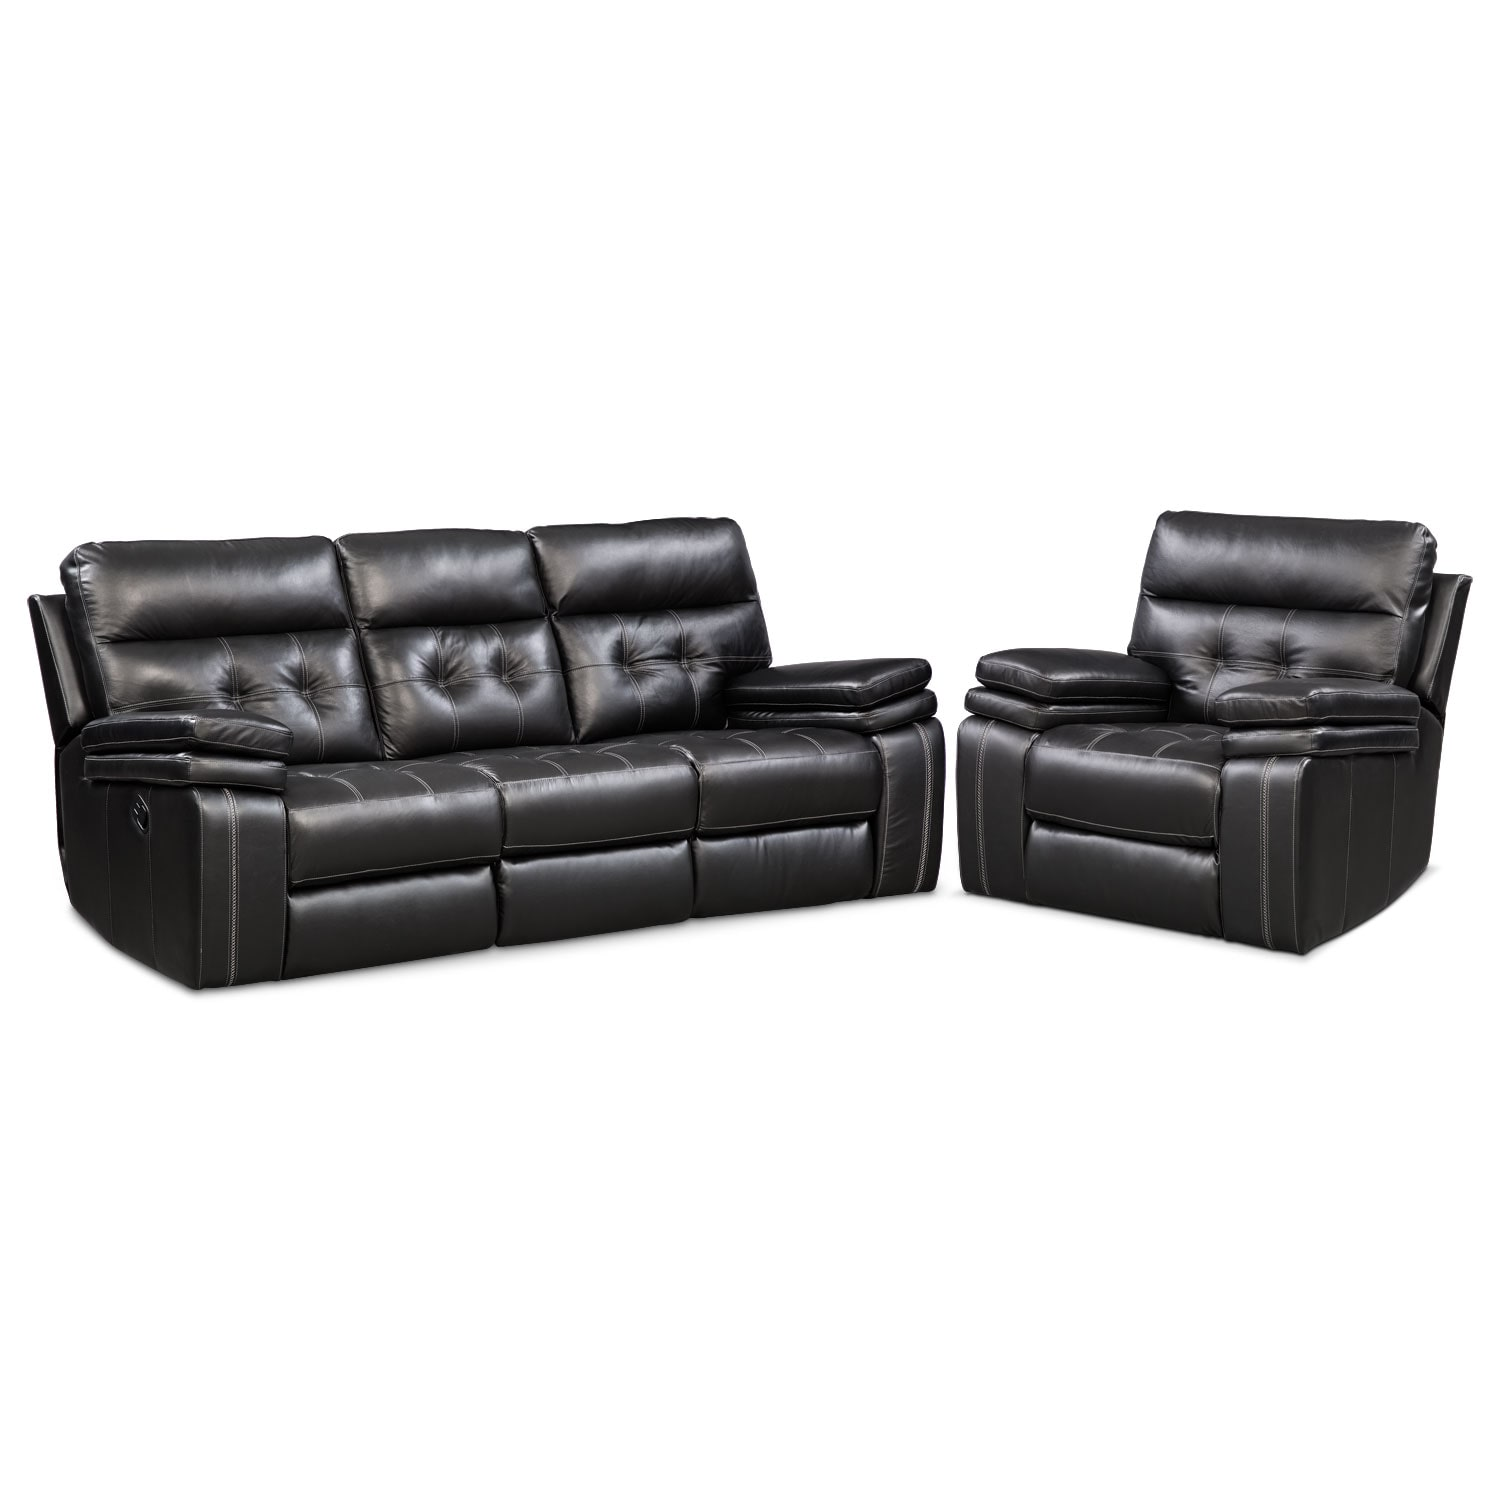 Living Room Furniture - Brisco Manual Reclining Sofa and Recliner Set